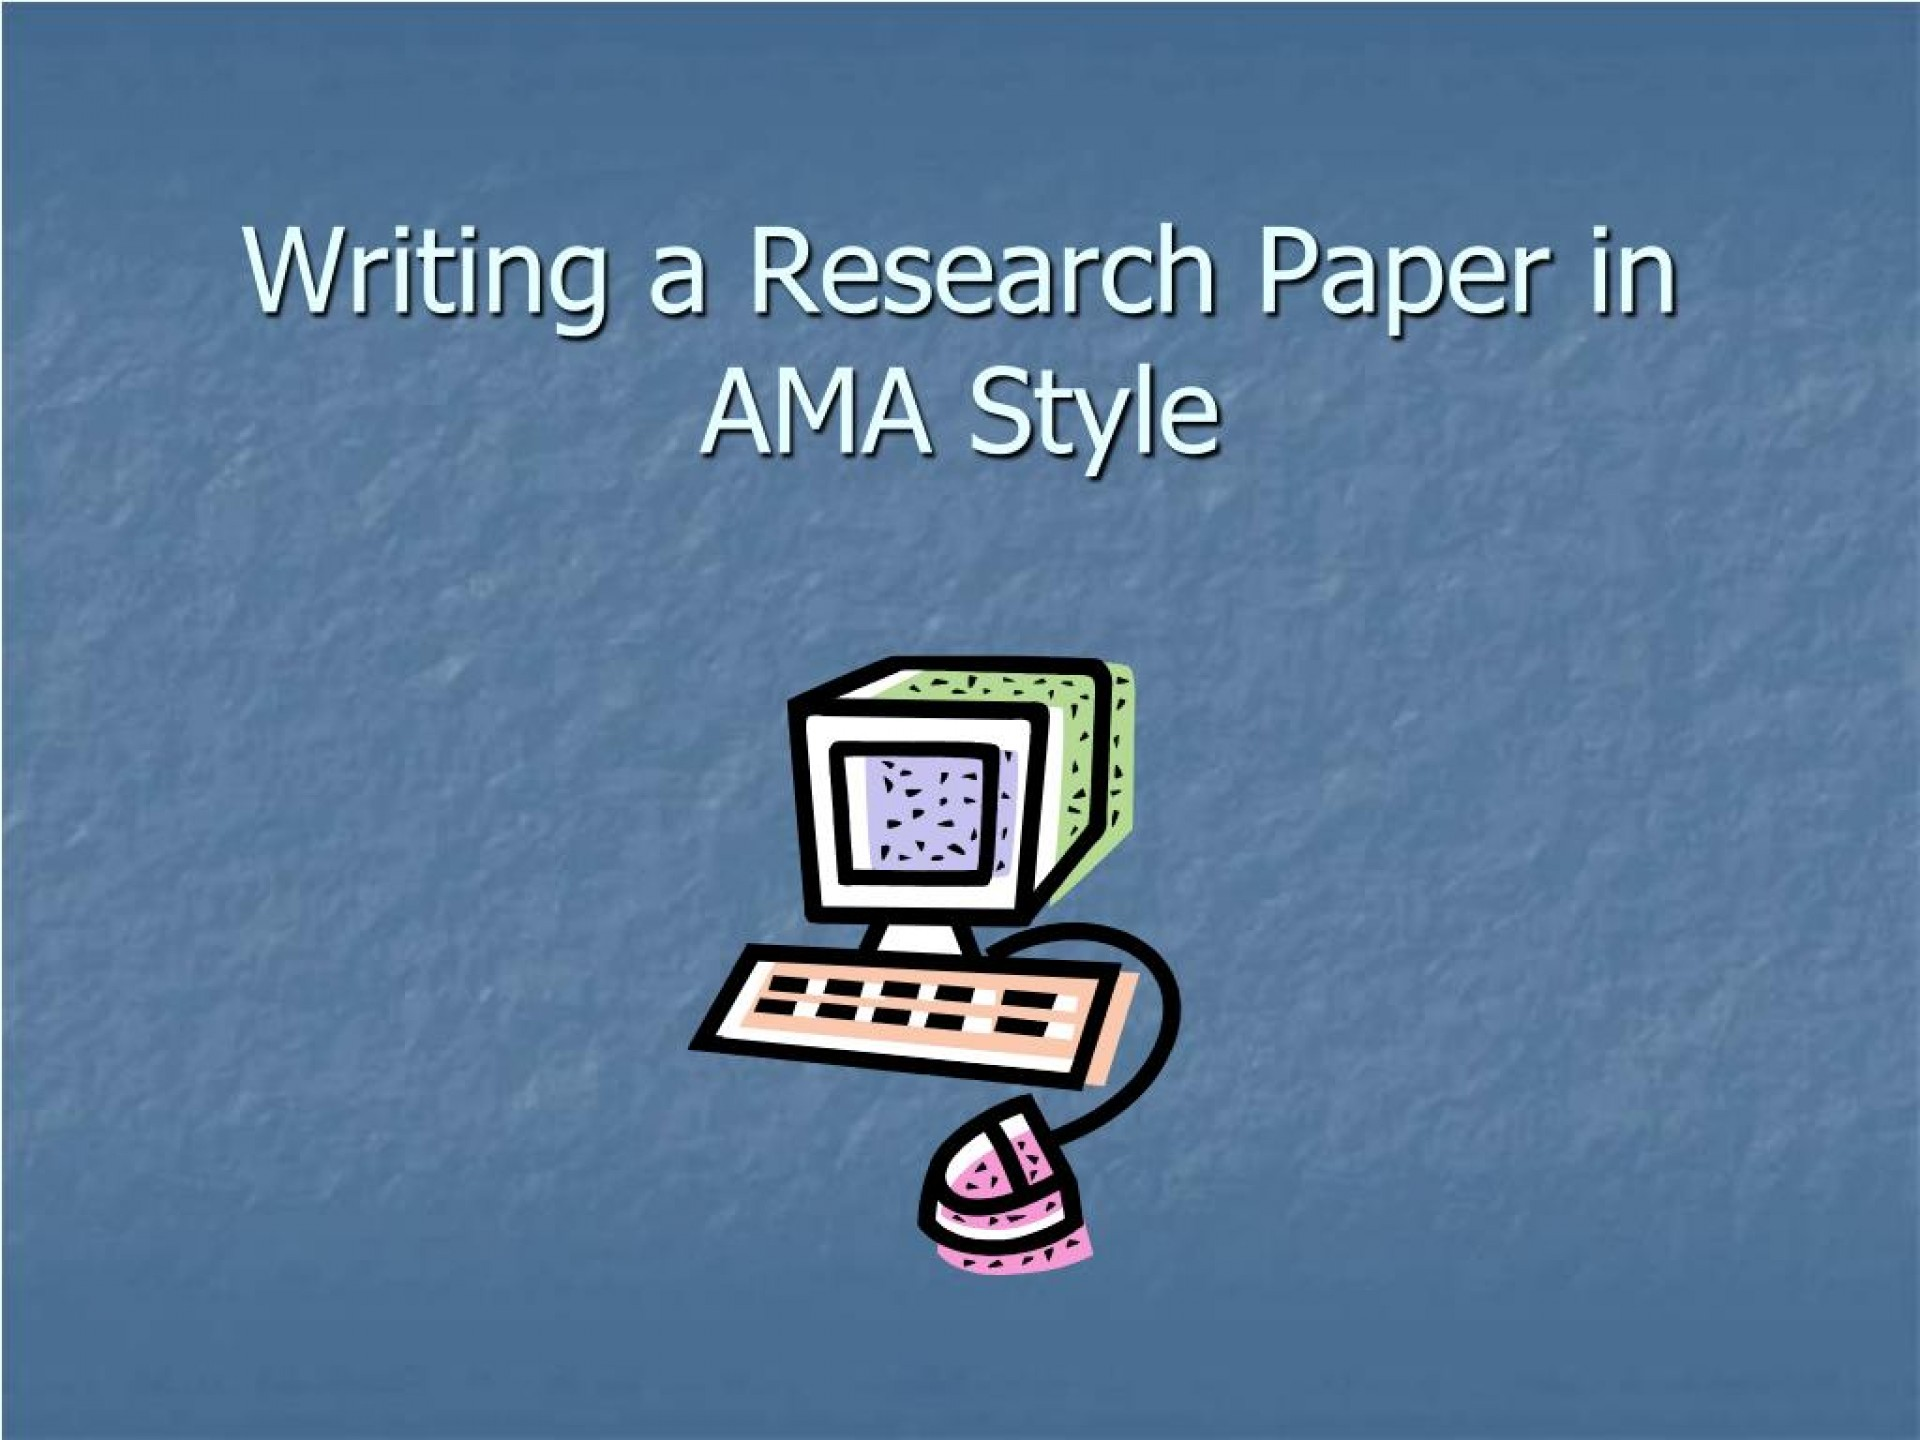 014 Research Paper Example Of Ppt Writing In Ama Style Unbelievable Methodology A Middle School 1920